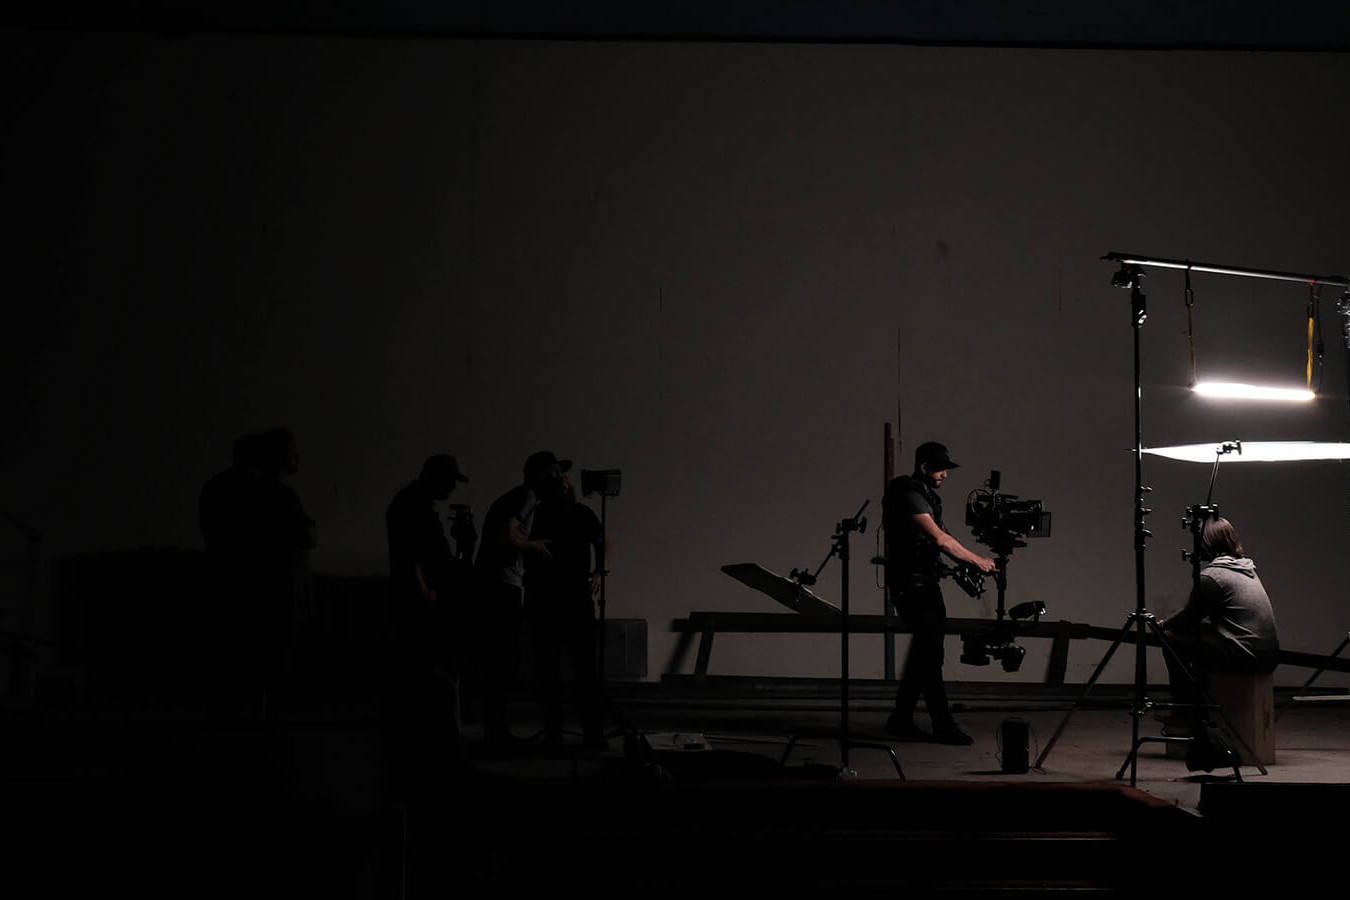 image of filmmakers with lights, cameras and microphones in darkly lit room, preparing to shoot a scene